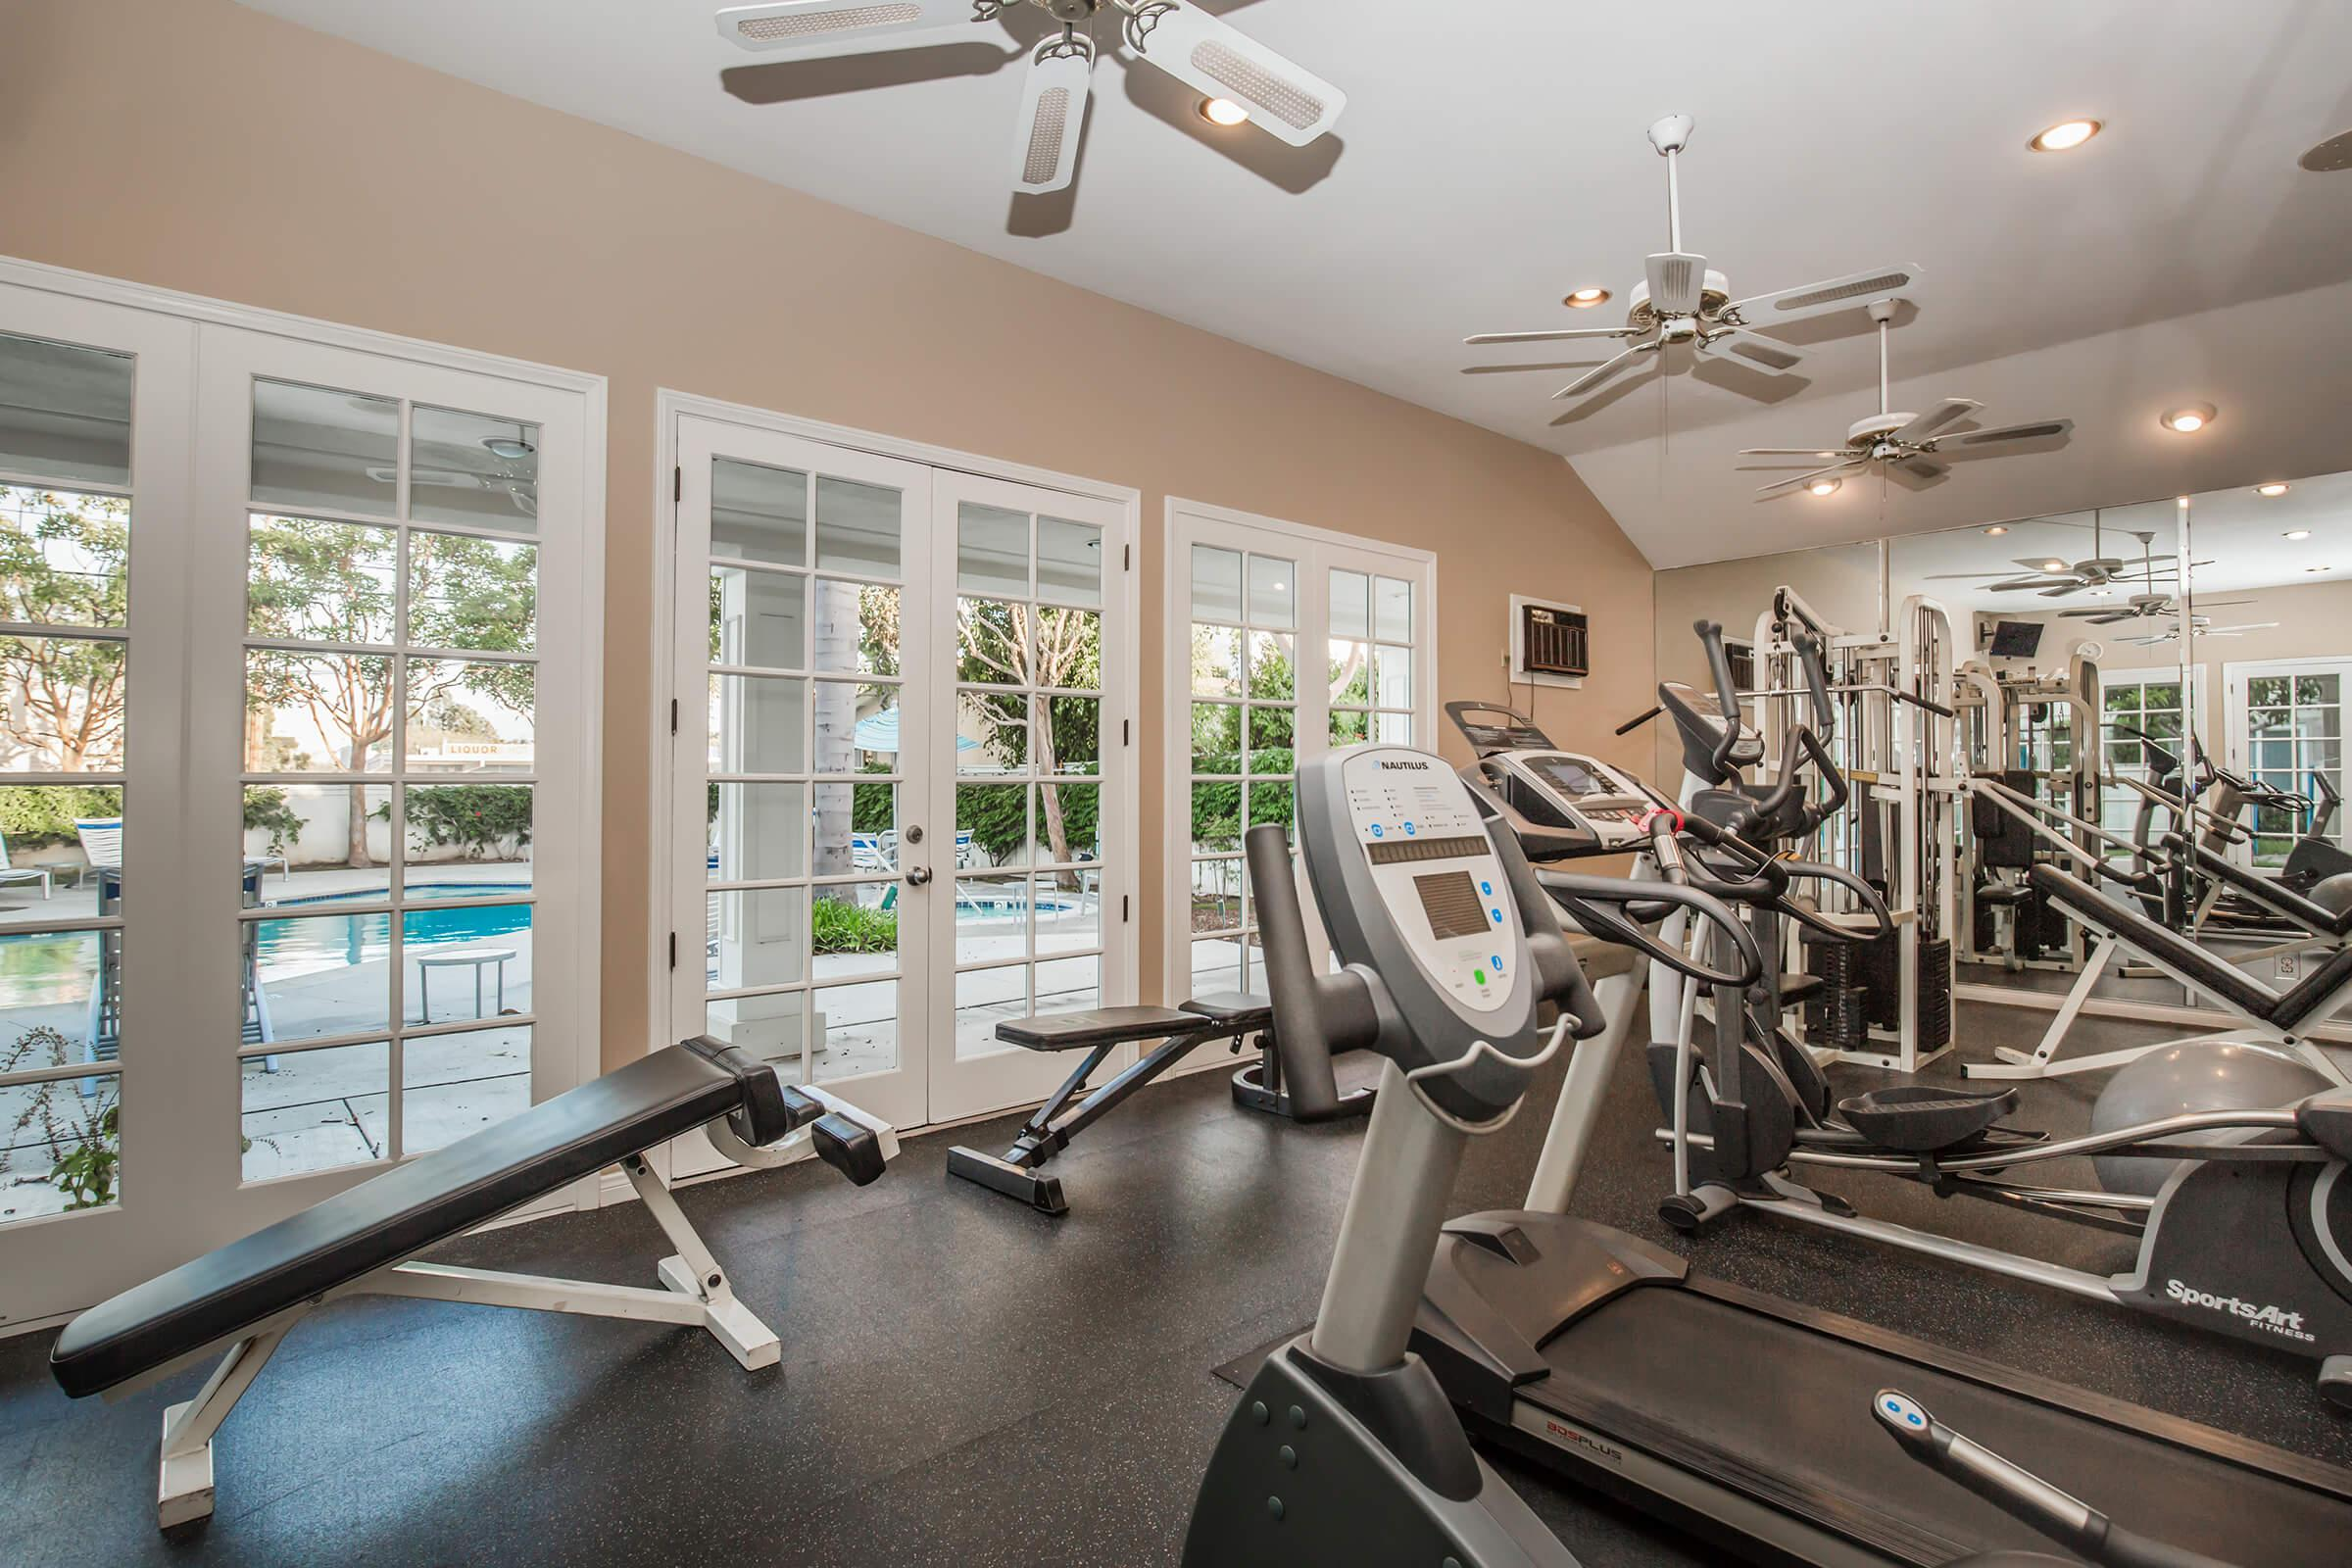 Work-out equipment in the gym